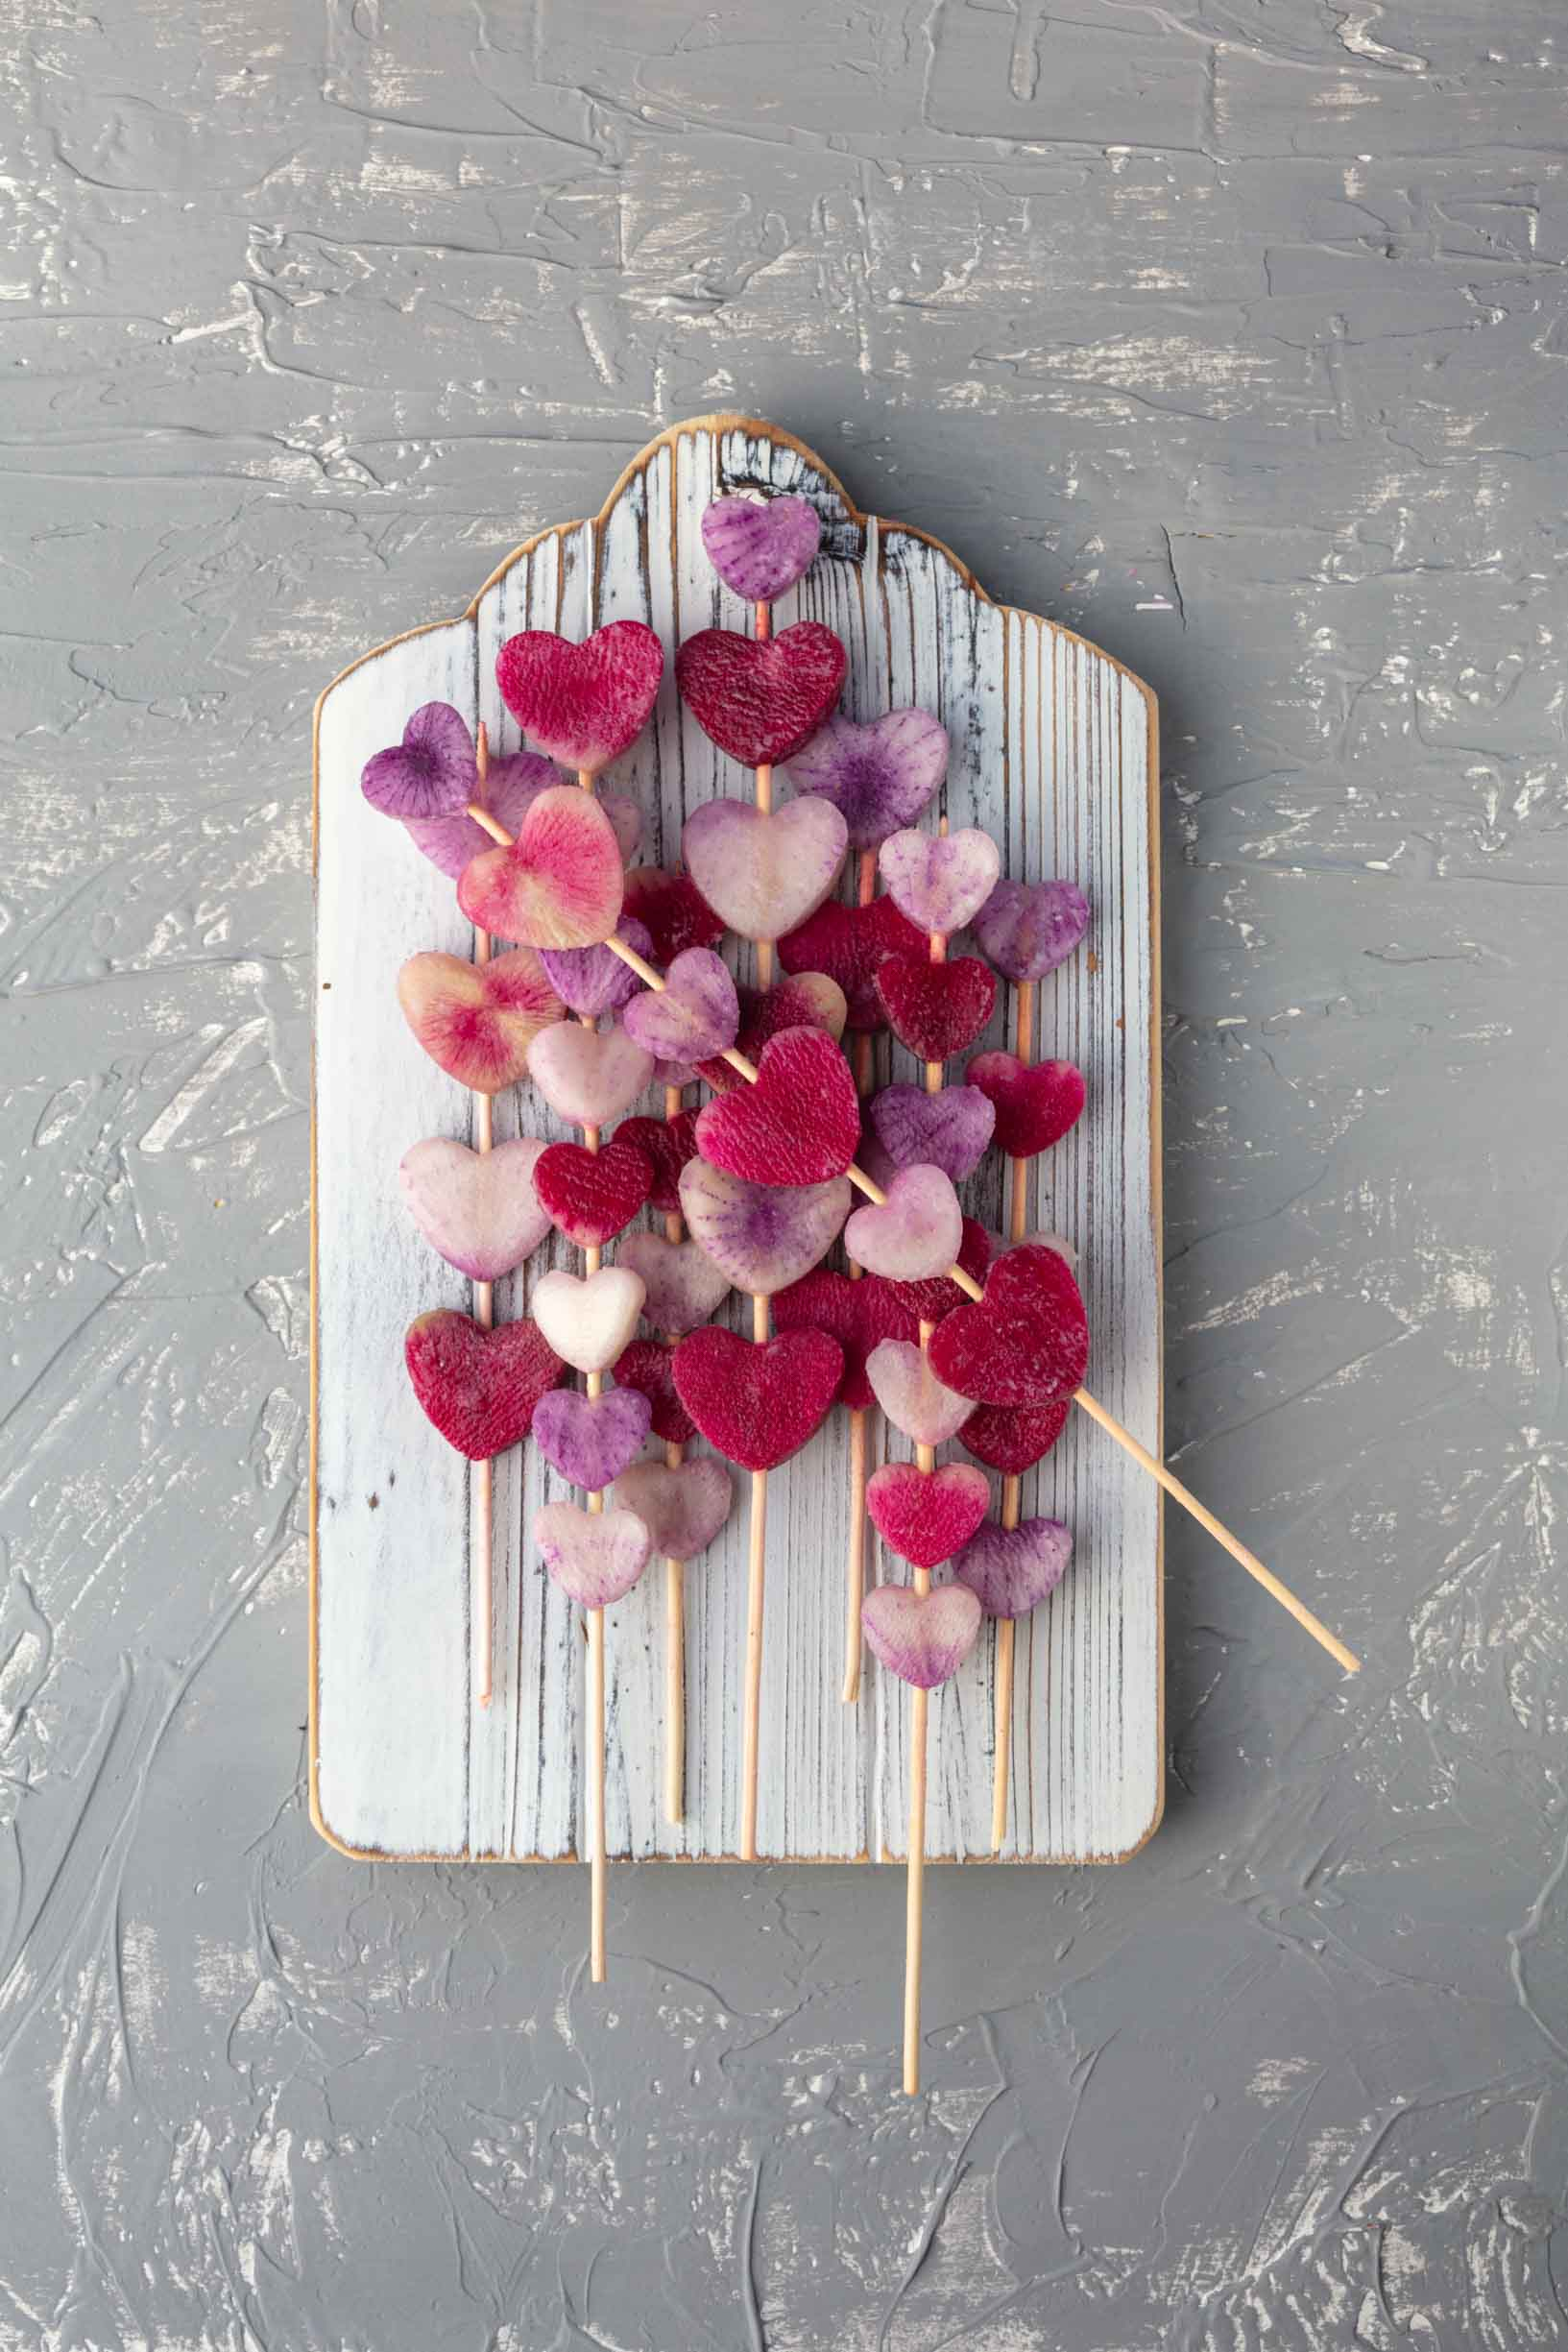 threading the radish hearts onto skewers